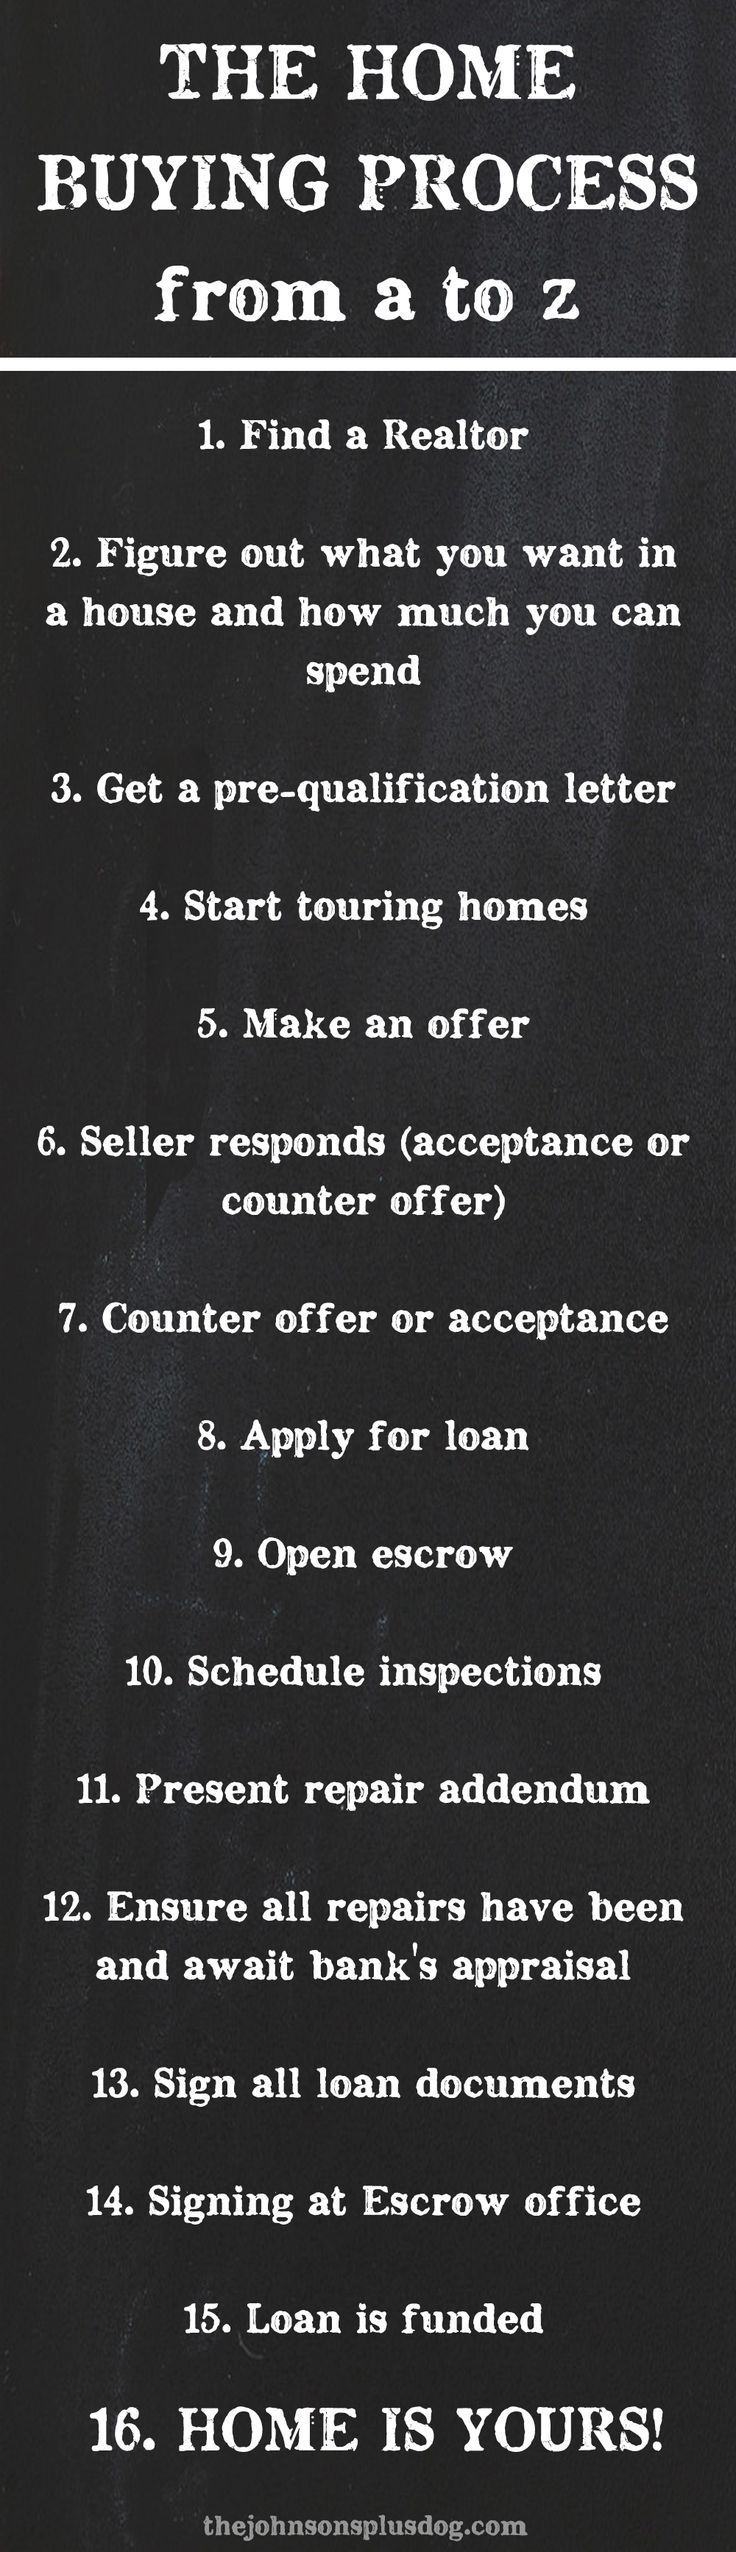 The Home Buying Process from A to Z   the johnsons plus dog buying a home #homeowner #buyahome #realestate buying first home